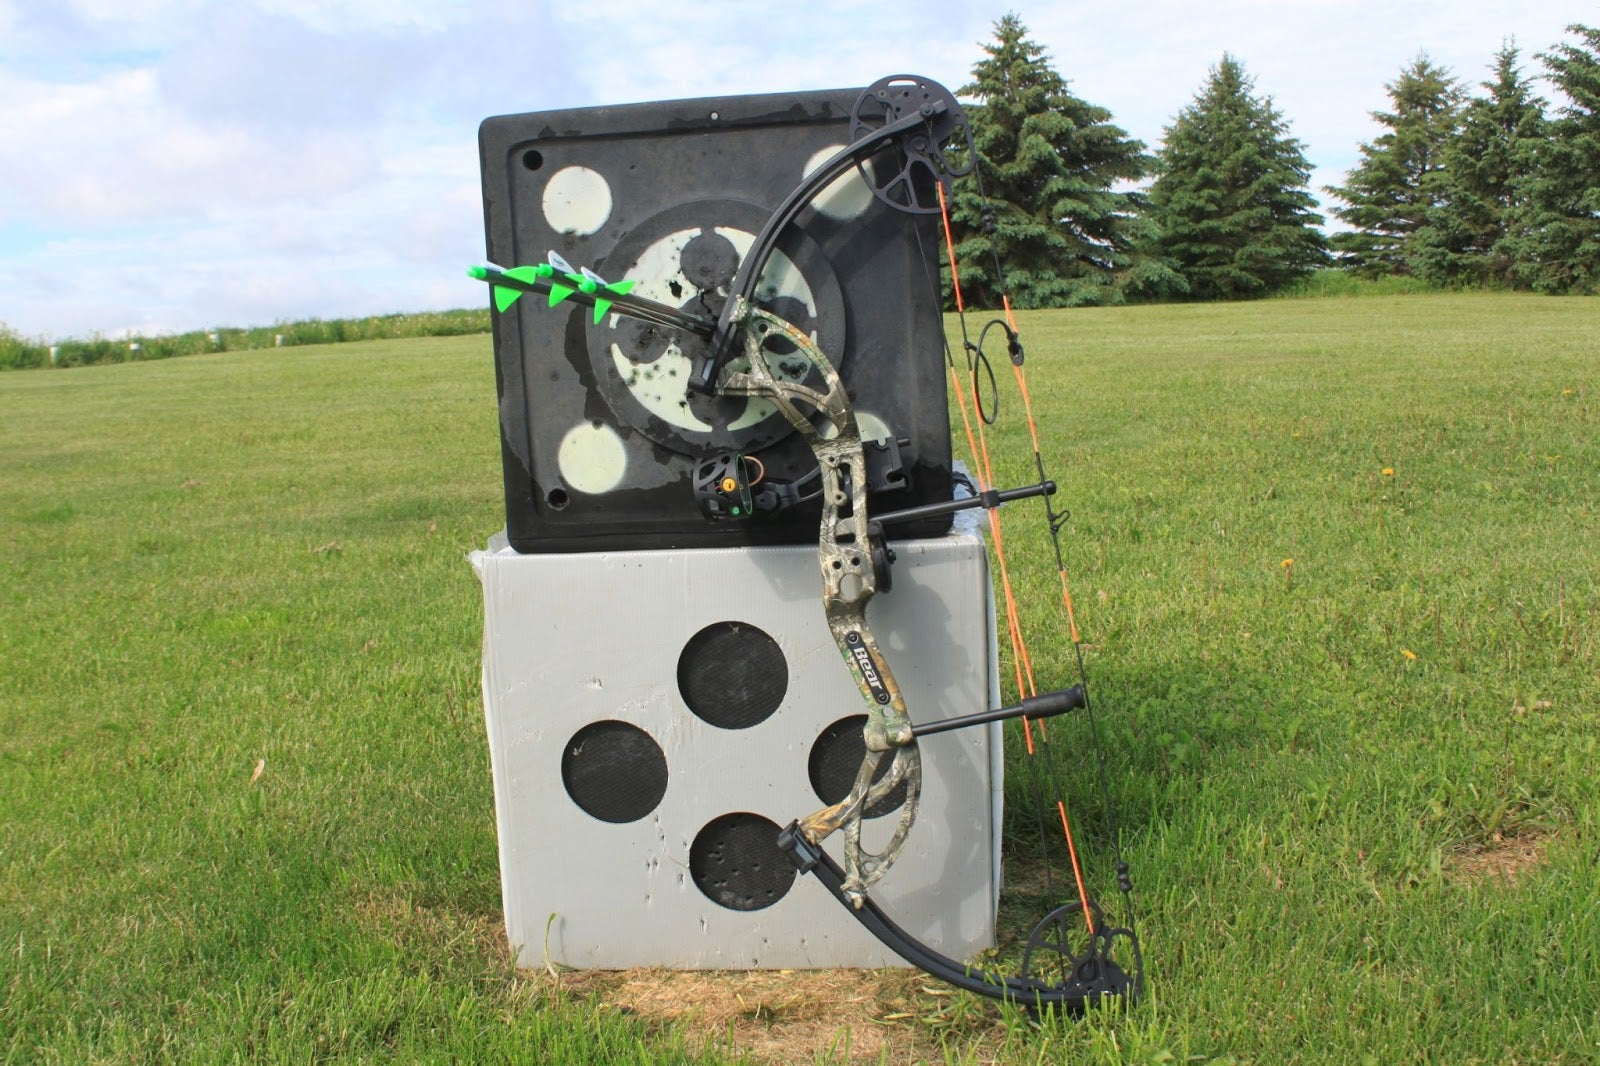 Bear Cruzer G2 hunting bow leaning against a target